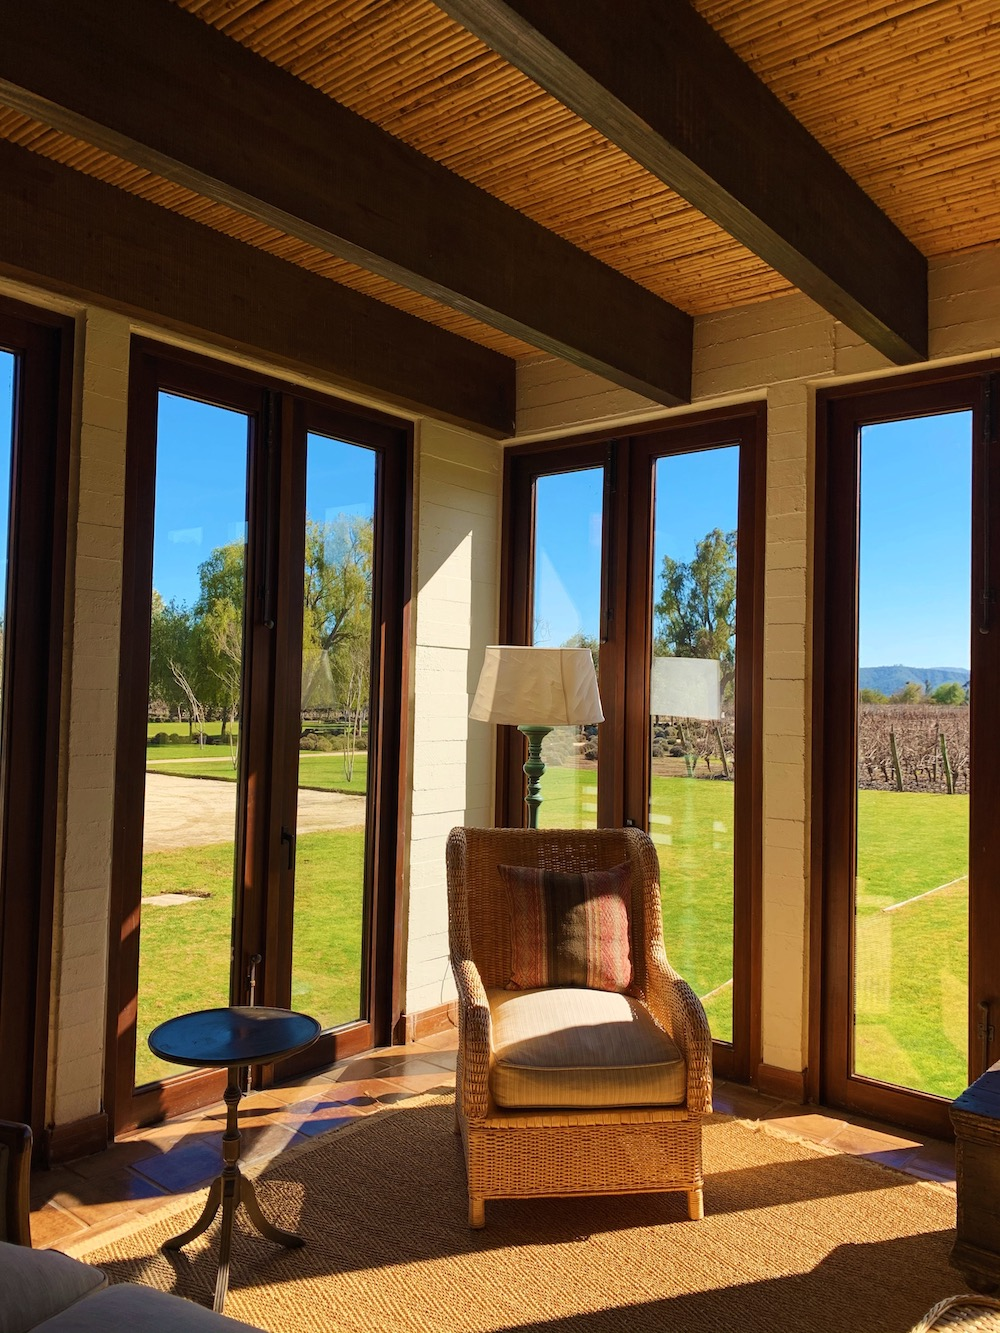 Casa Macaire, Chile   Plan South America